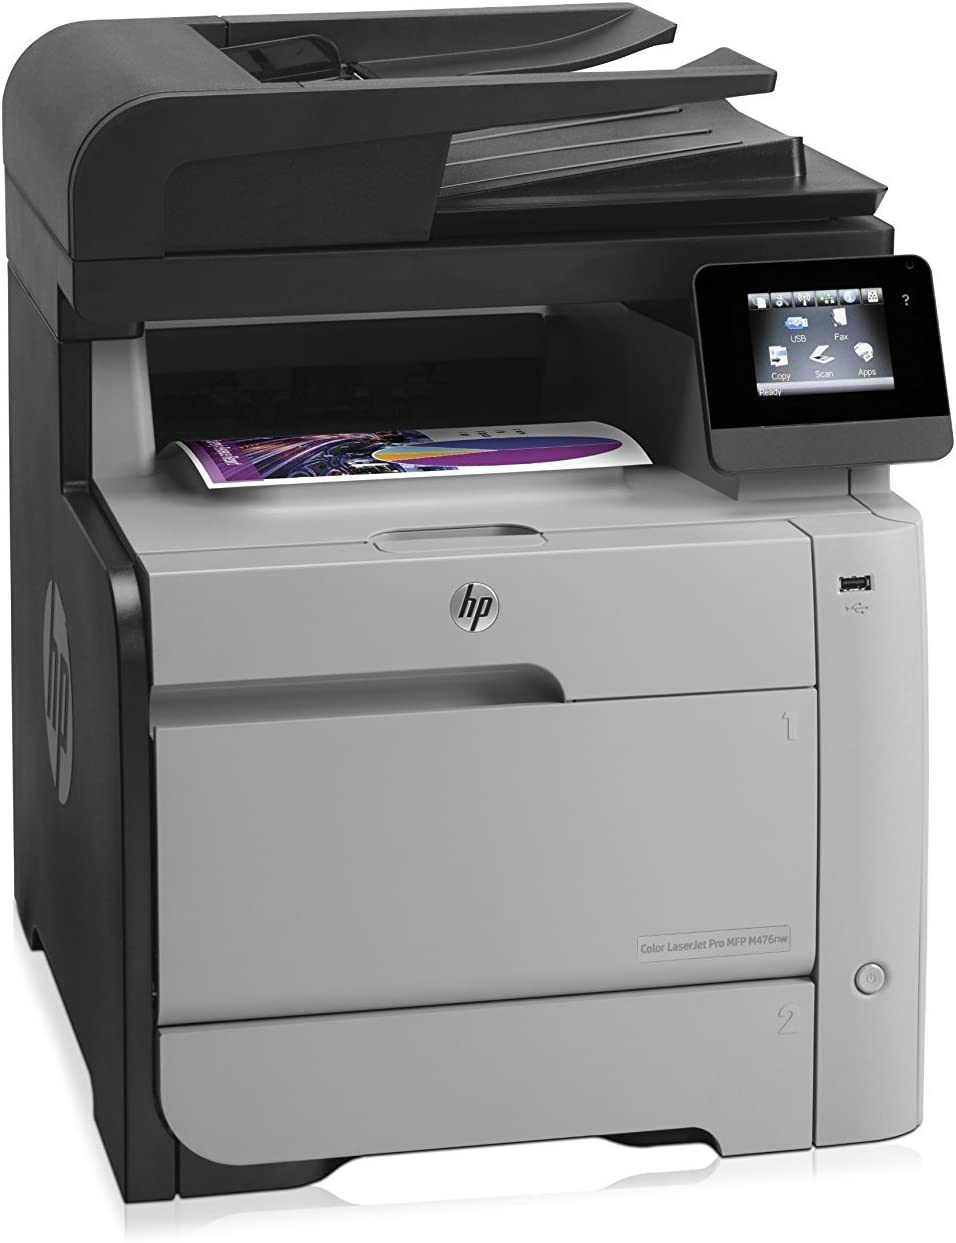 HP Laserjet Pro M476nw Wireless All-in-One Color Printer, Amazon Dash Replenishment Ready (Discontinued by Manufacturer)